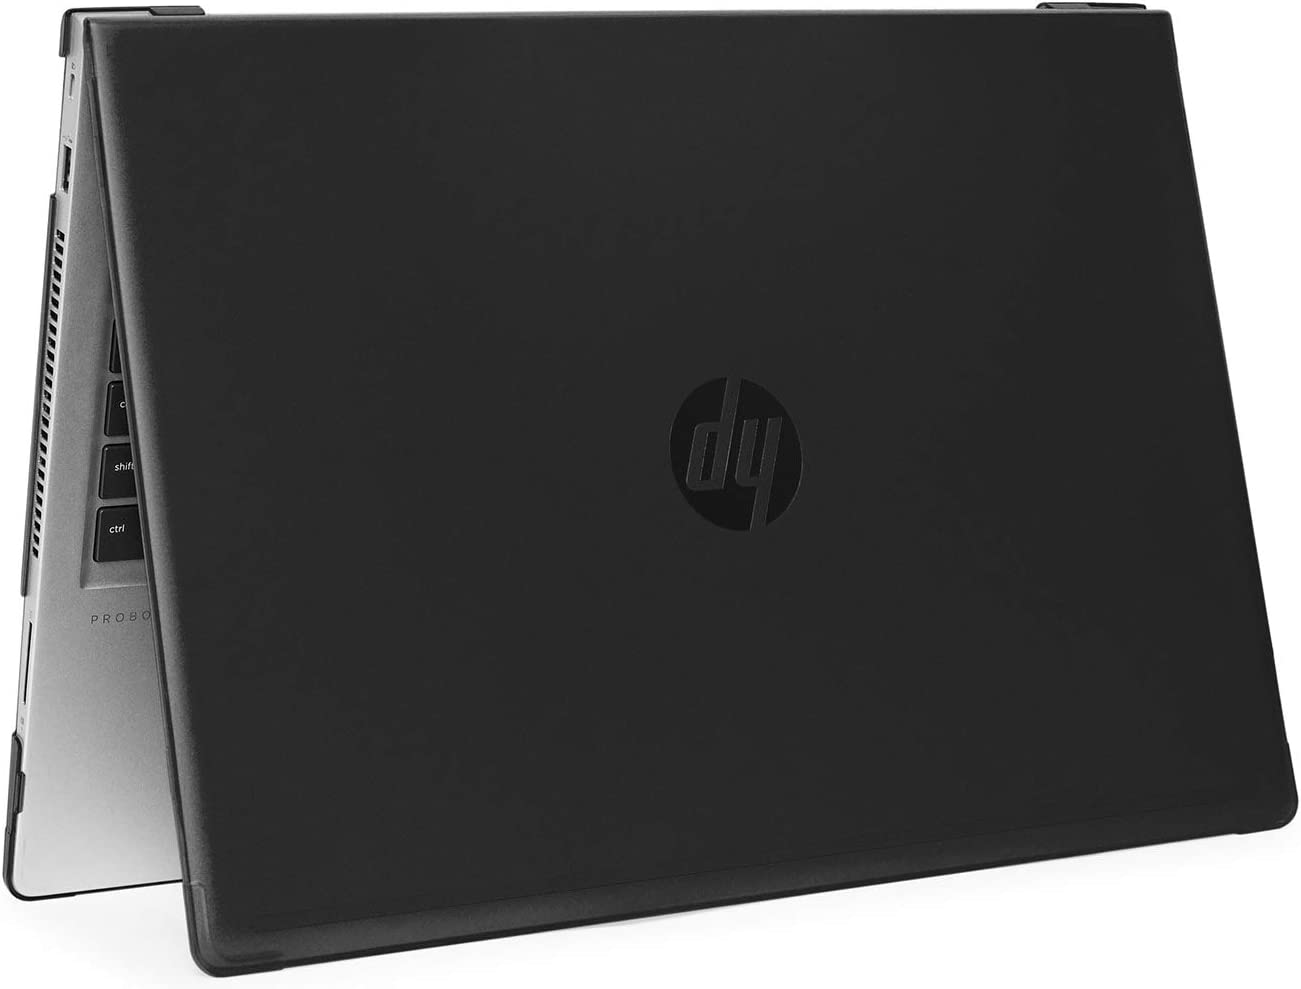 """mCover Hard Shell Case for 2019 15.6"""" HP ProBook 450/455 G6 Series (NOT Compatible with Older HP ProBook 450/455 G1 / G2 / G3 / G4 / G5 Series) Notebook PC (PB450-G6 Black)"""